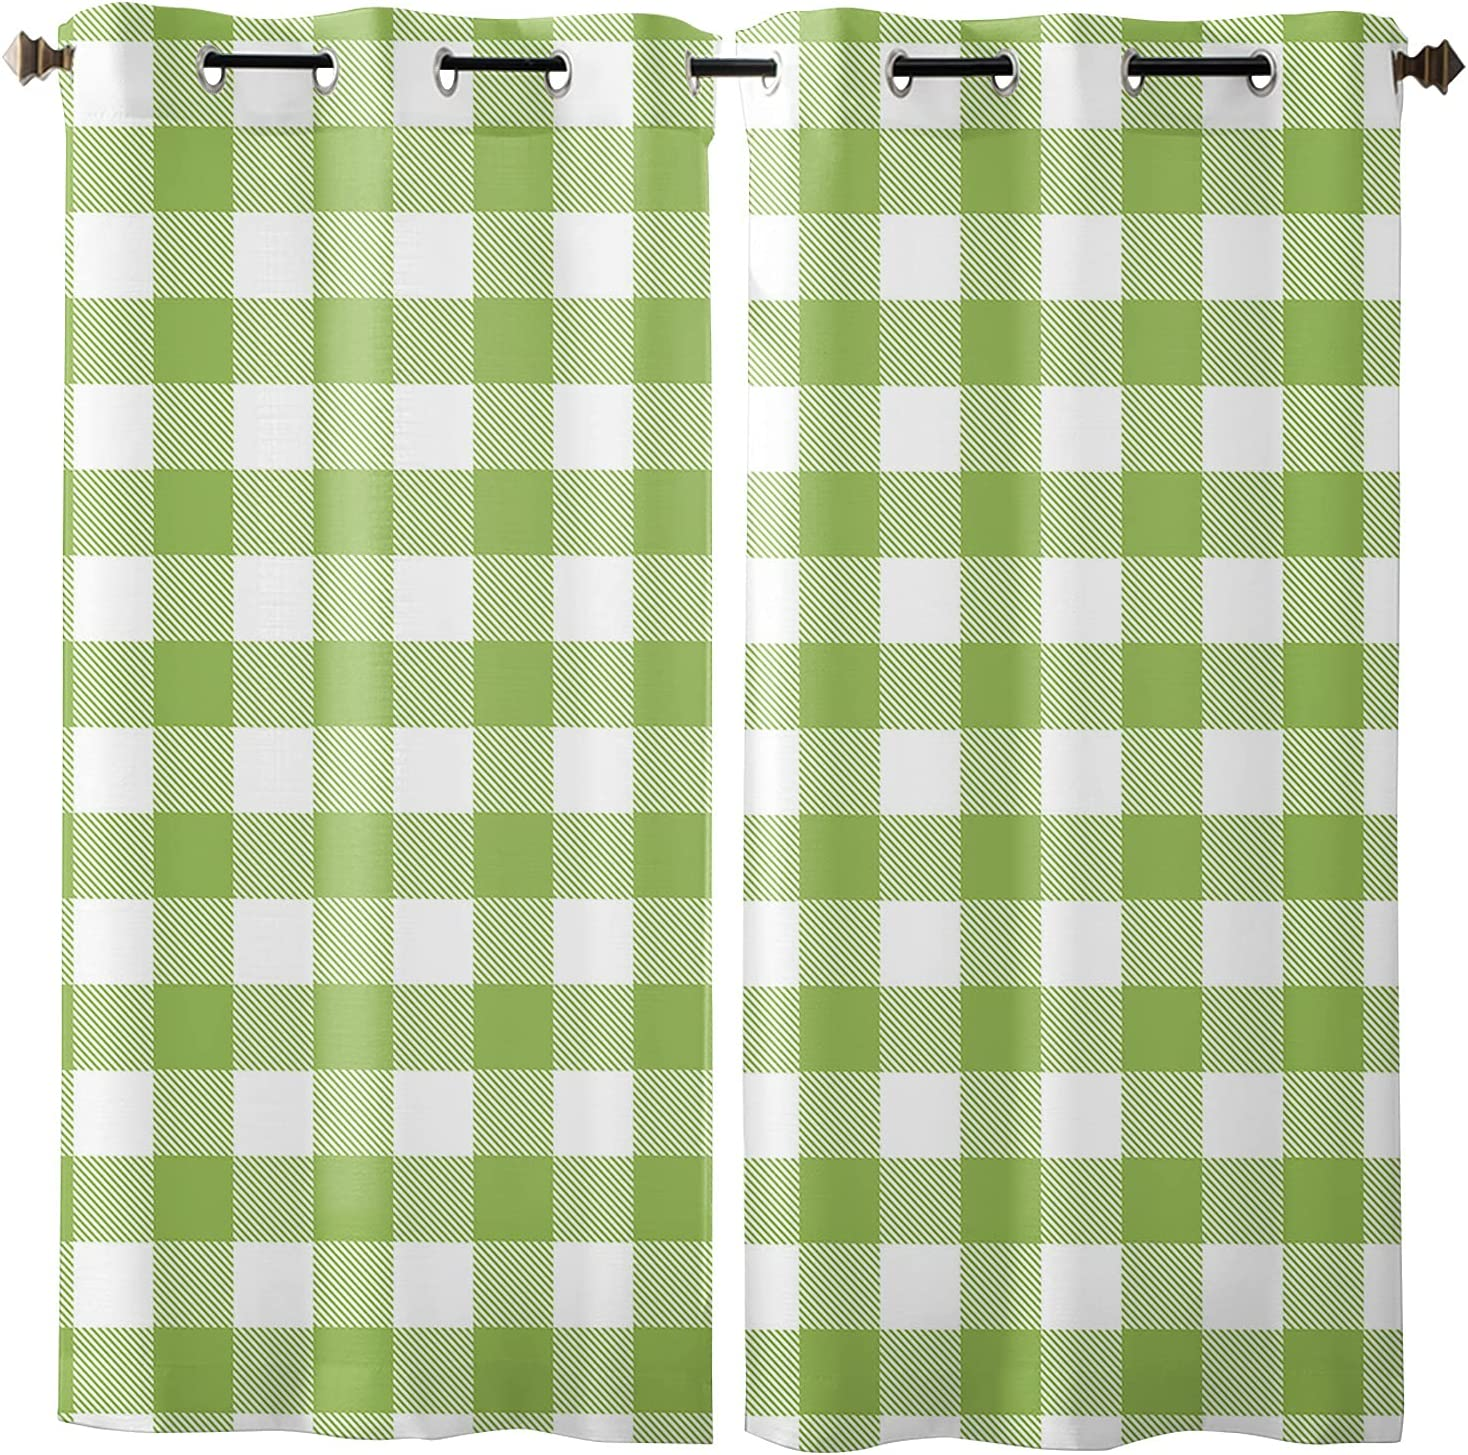 Fees free Window All items free shipping Curtain Panels Set of 2 for Drapes Grommet Livi Curtains